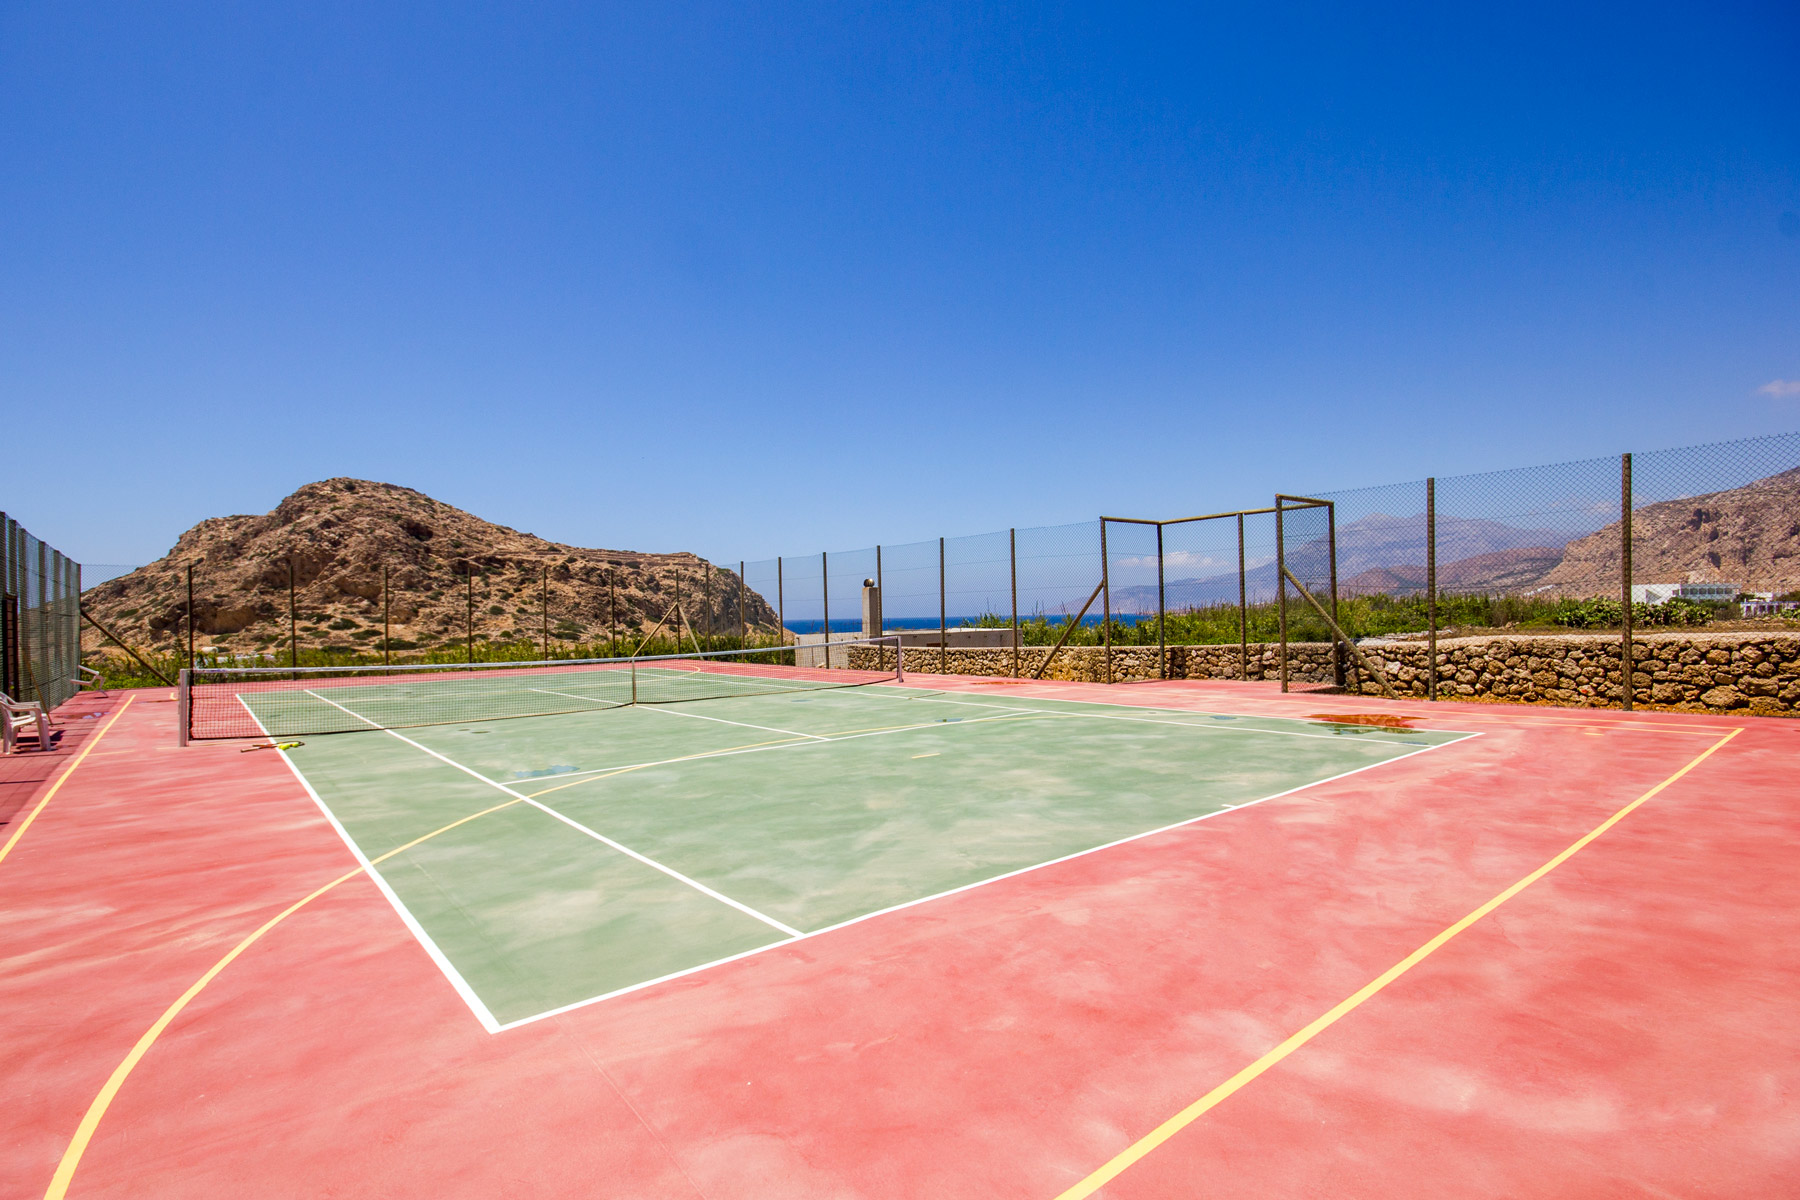 Tennis tournaments  courts in Karpathos Island Greece